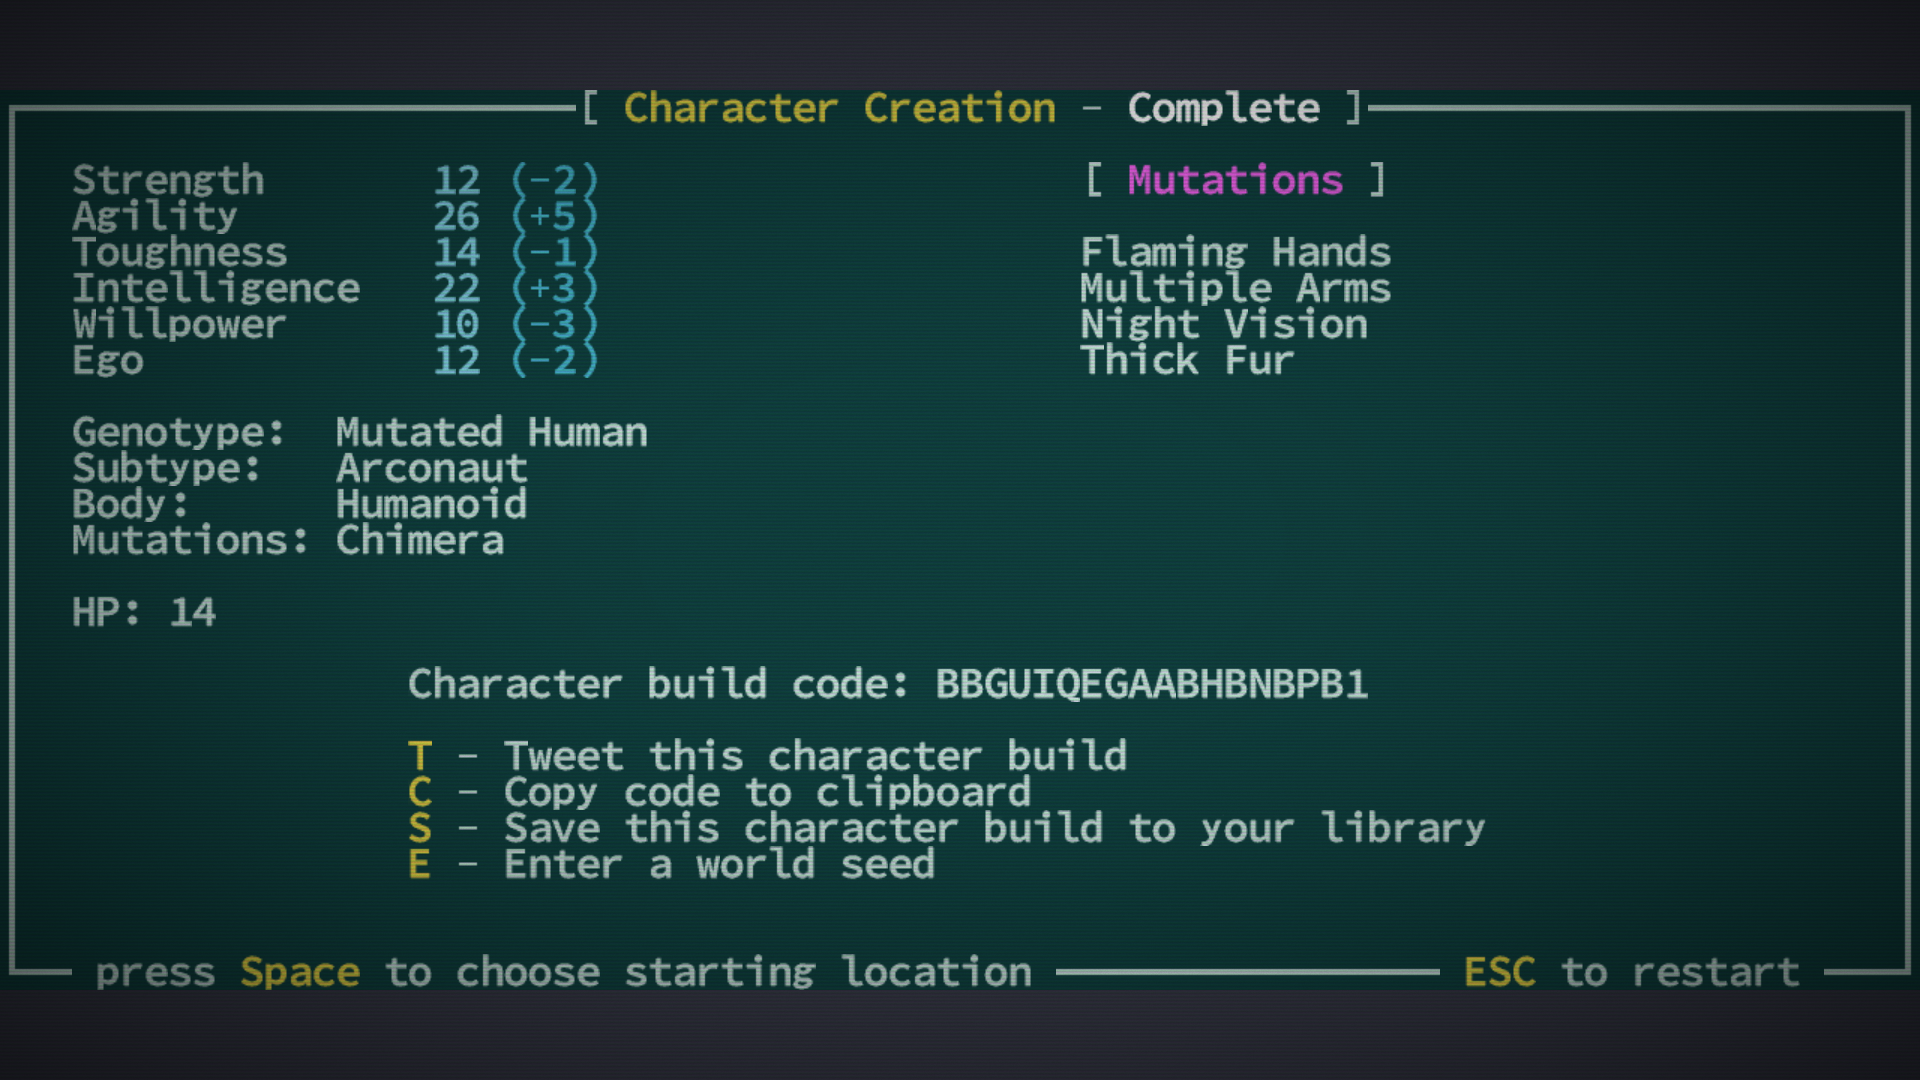 Caves of Qud Character Creation screen